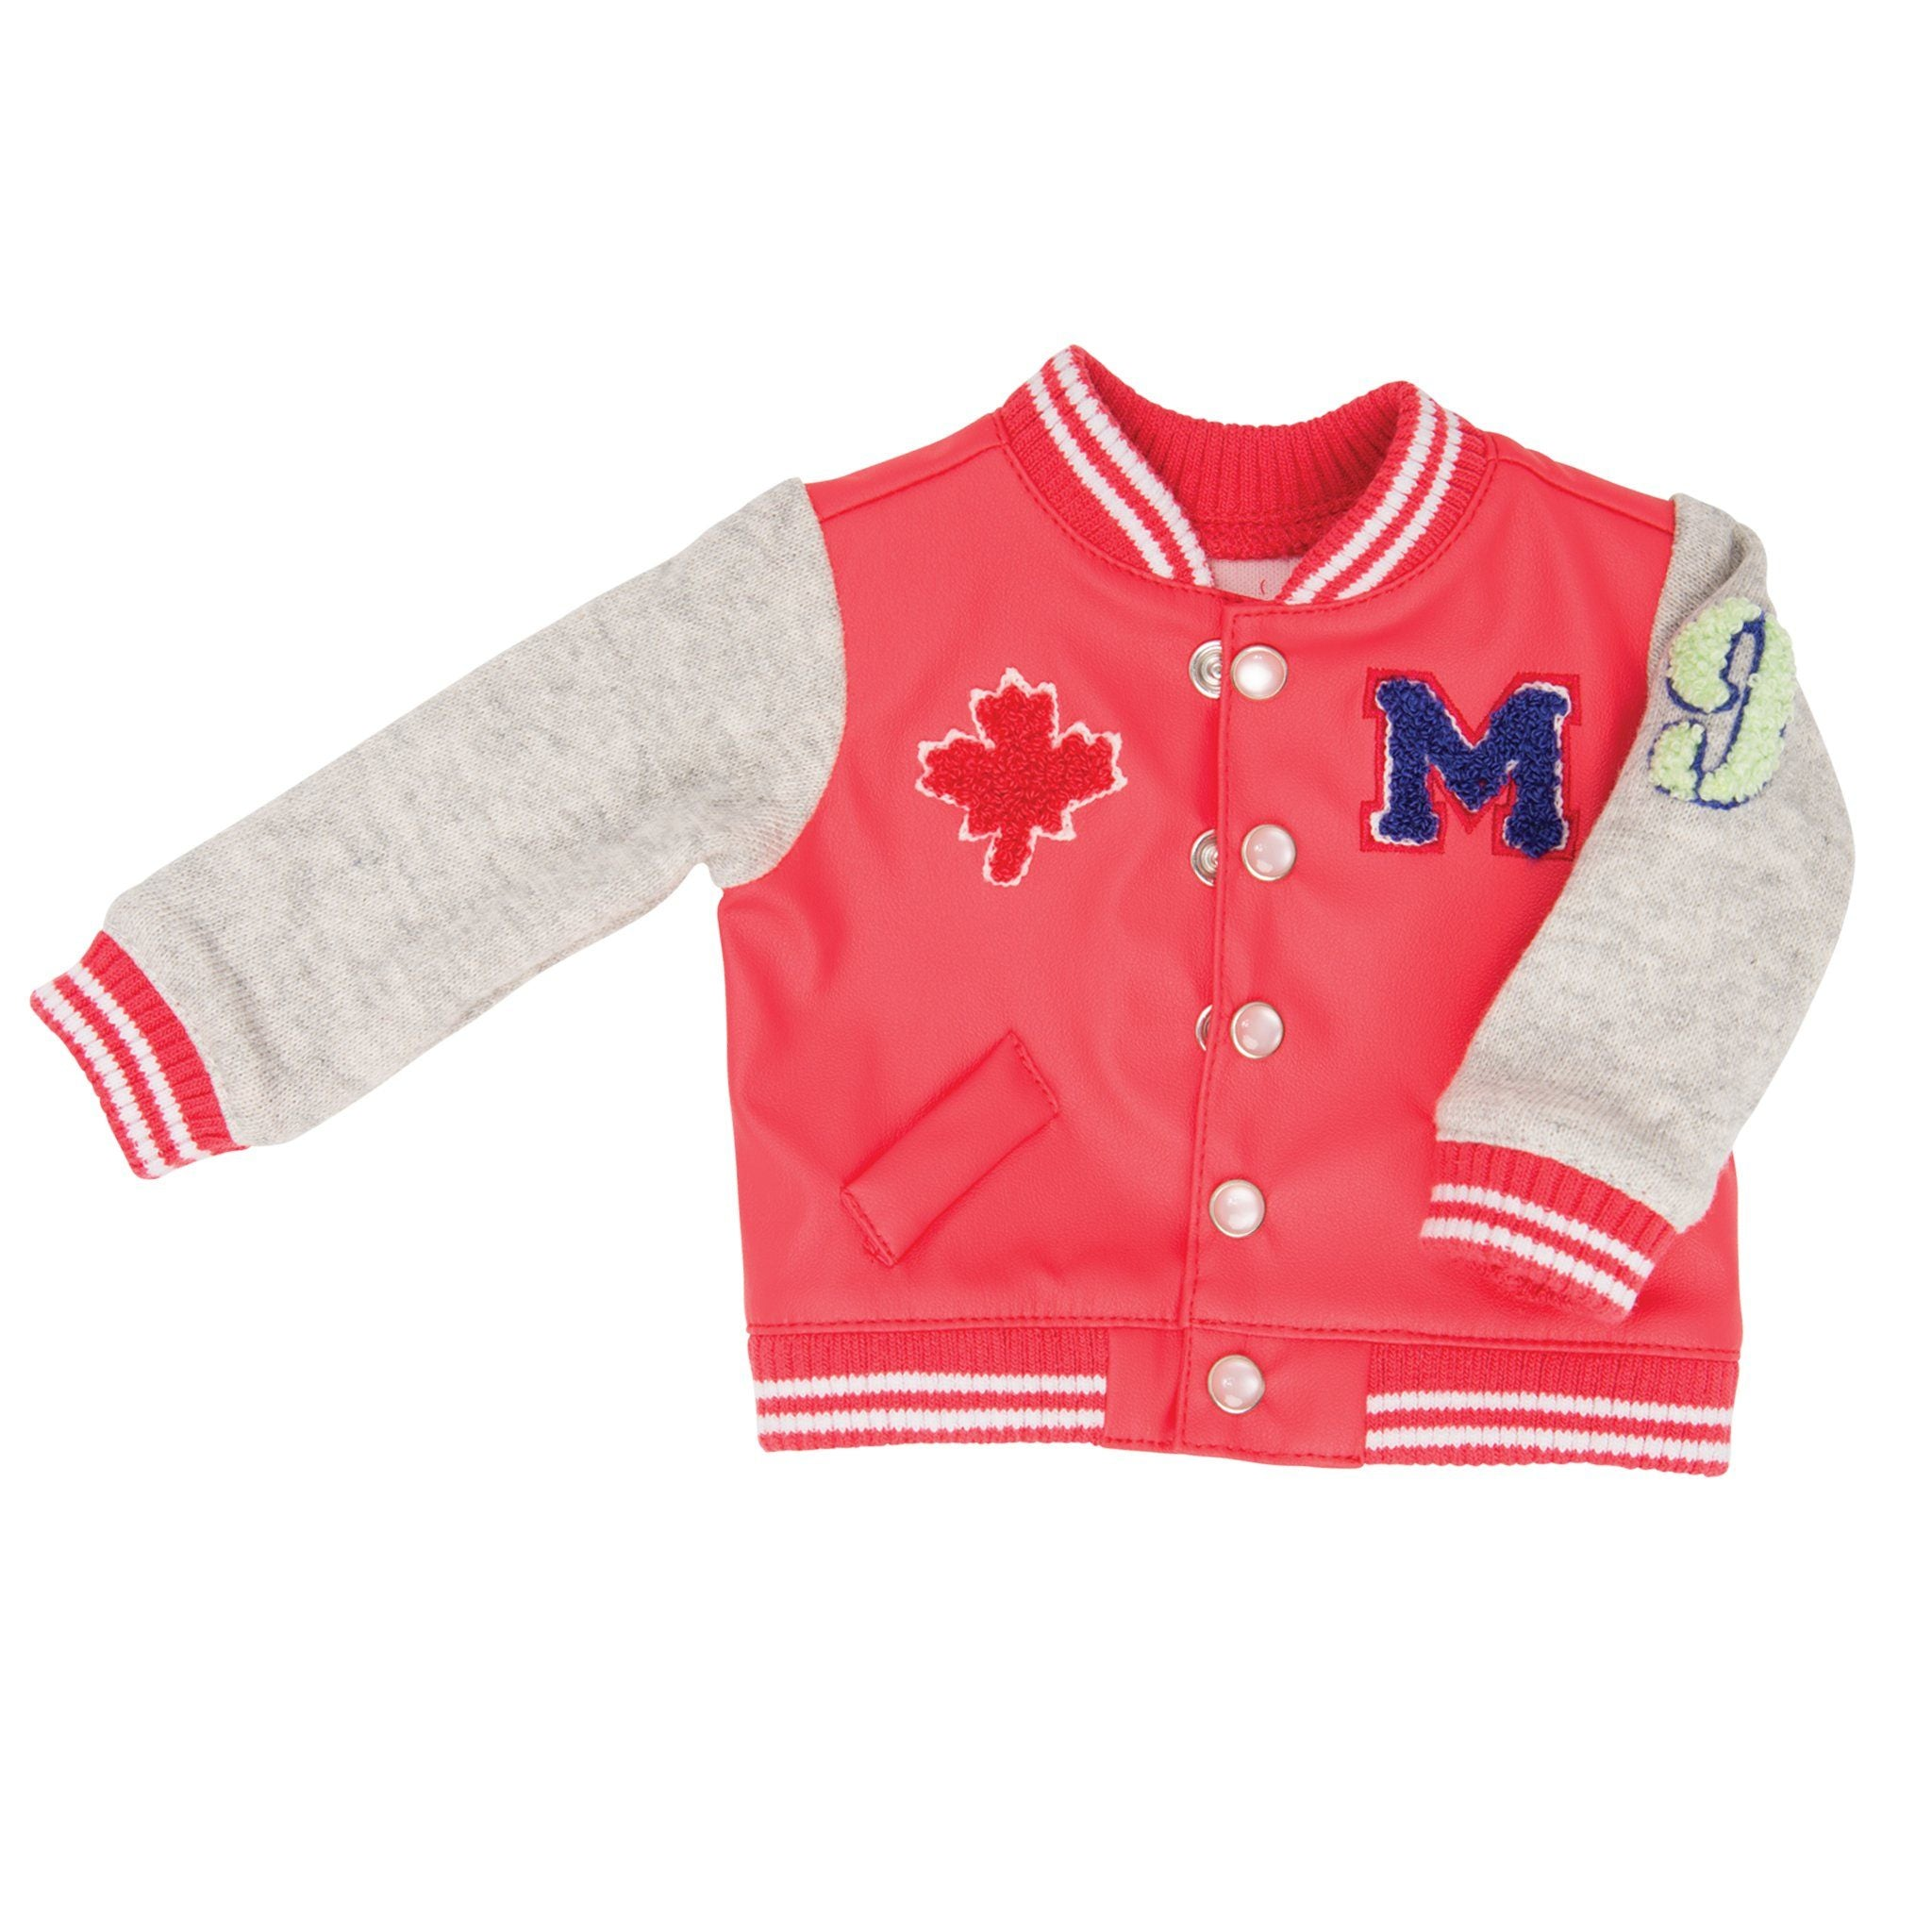 Campus Collection varsity jacket fits all 18 inch dolls.